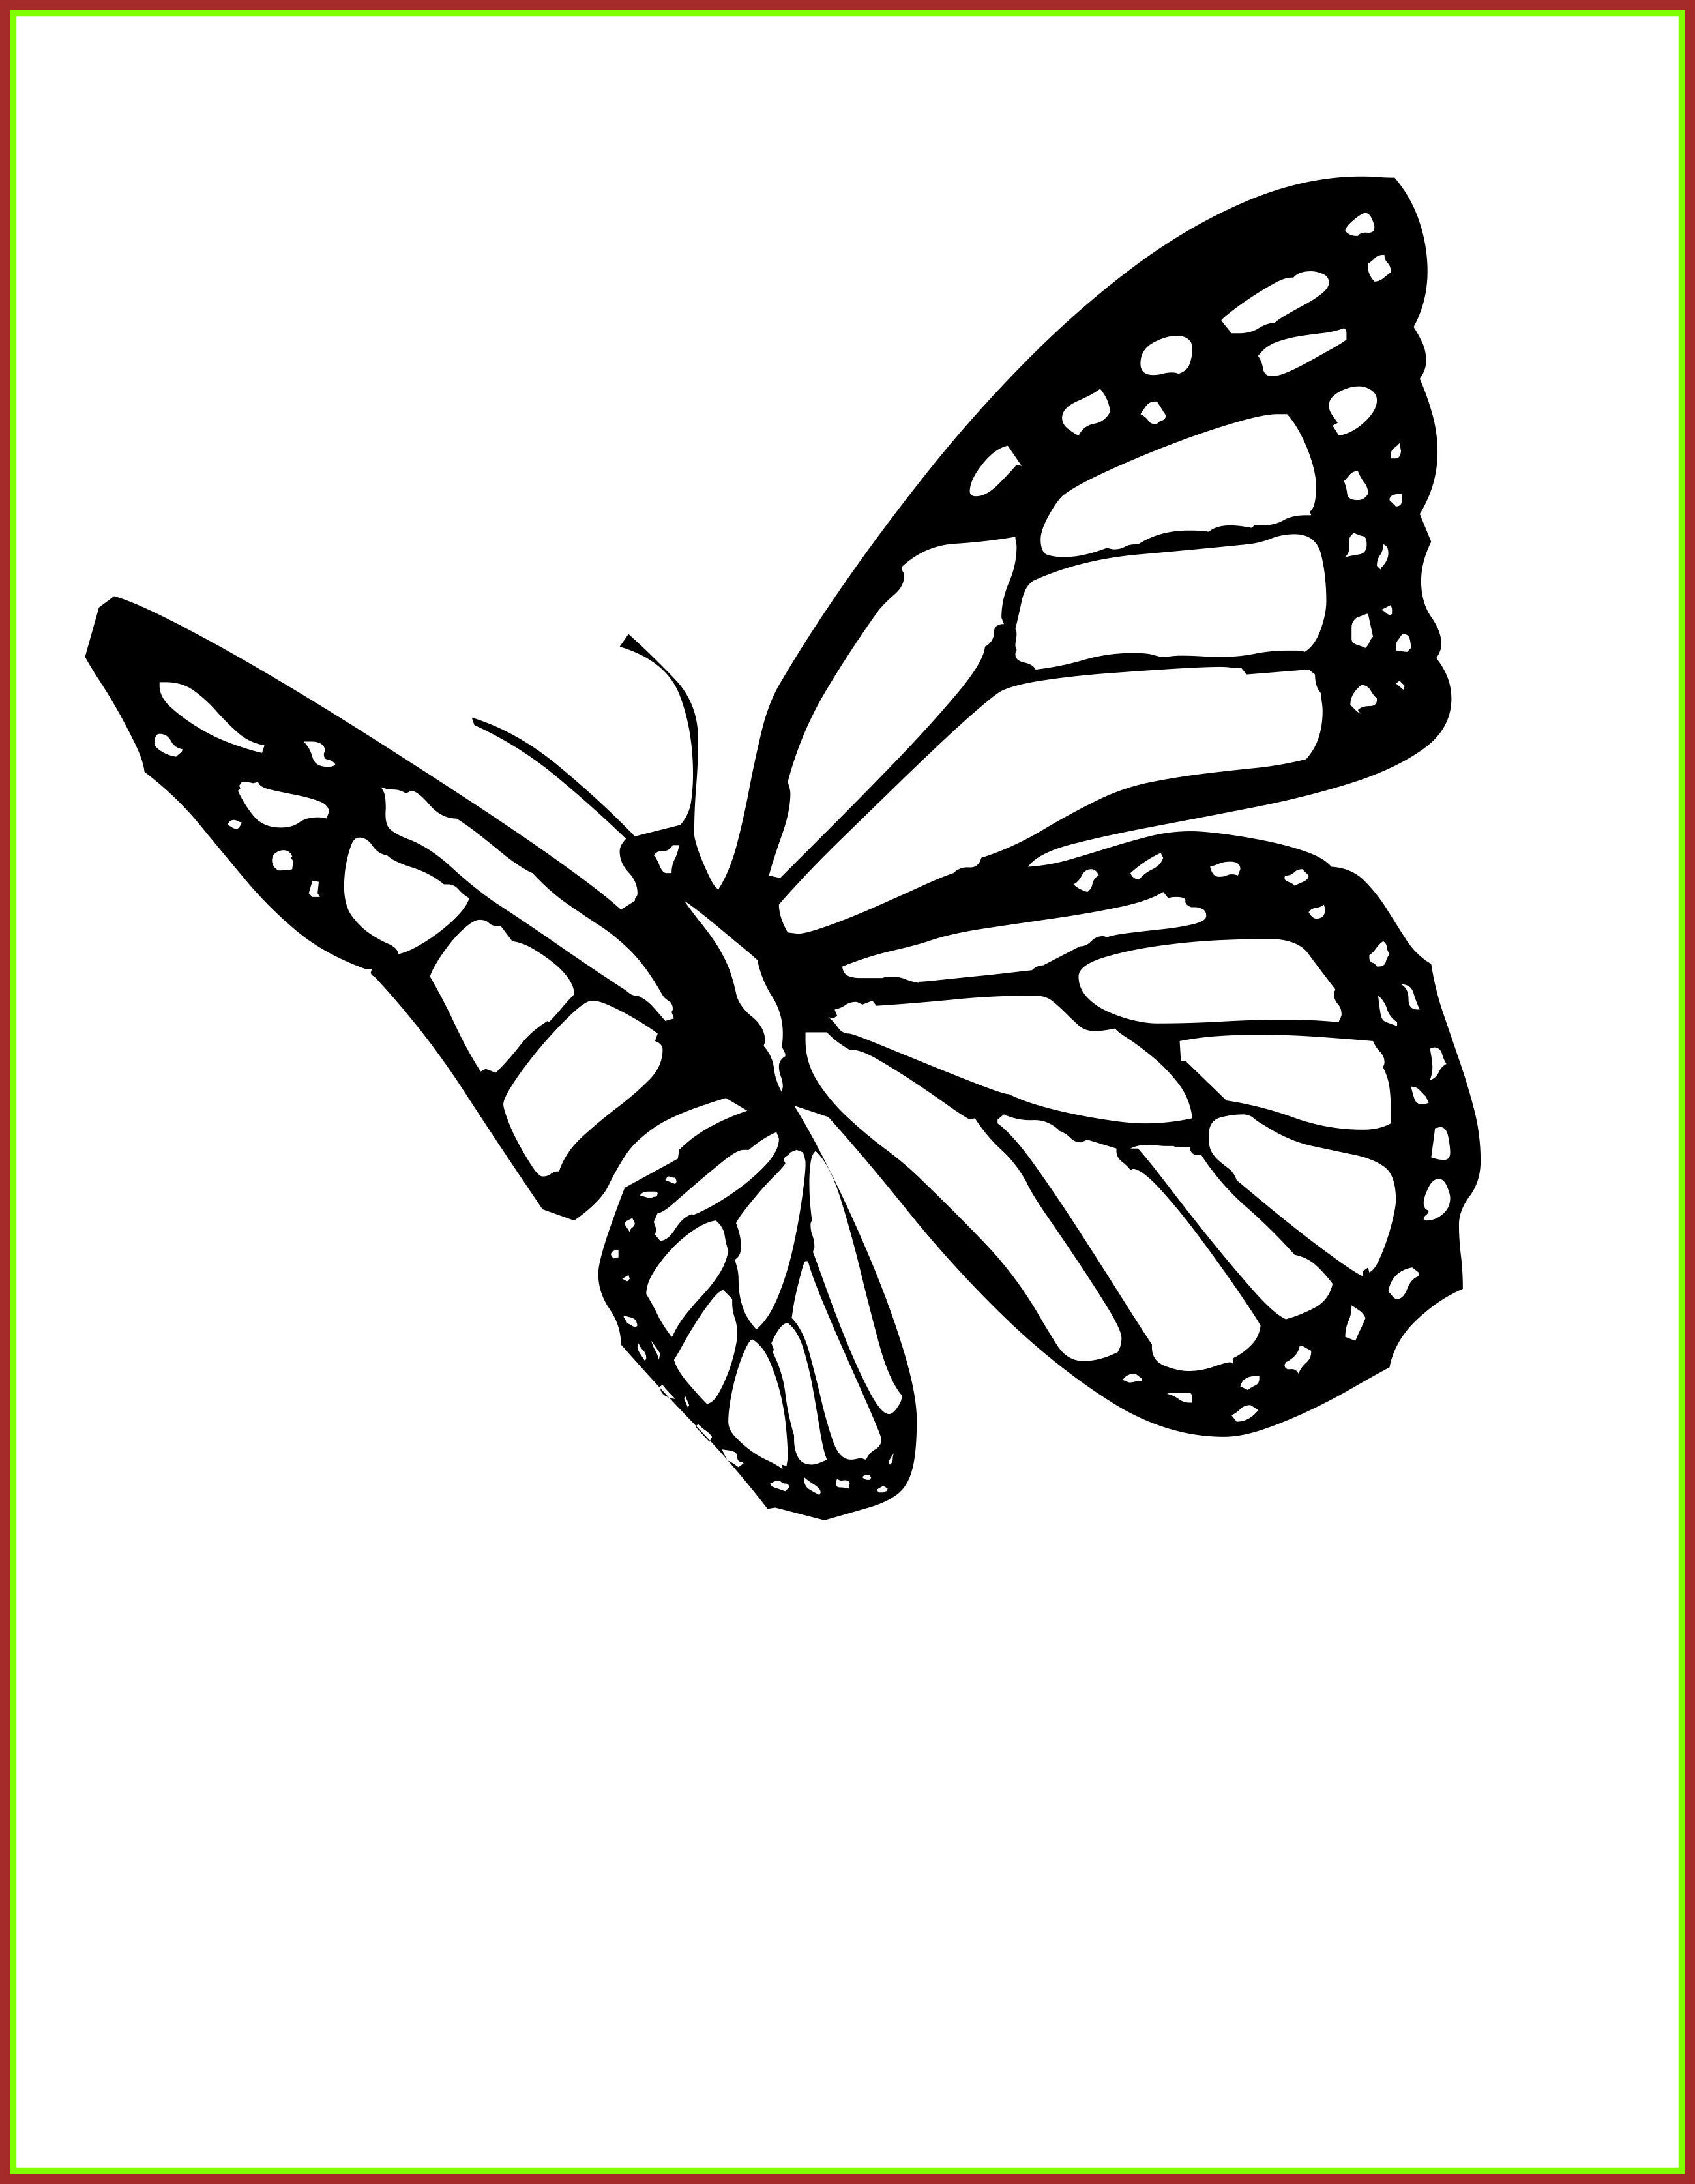 Amazing Monarch butterflies Coloring Page butterfly and Insect Collection Of Detailed Coloring Pages for Adults Collection